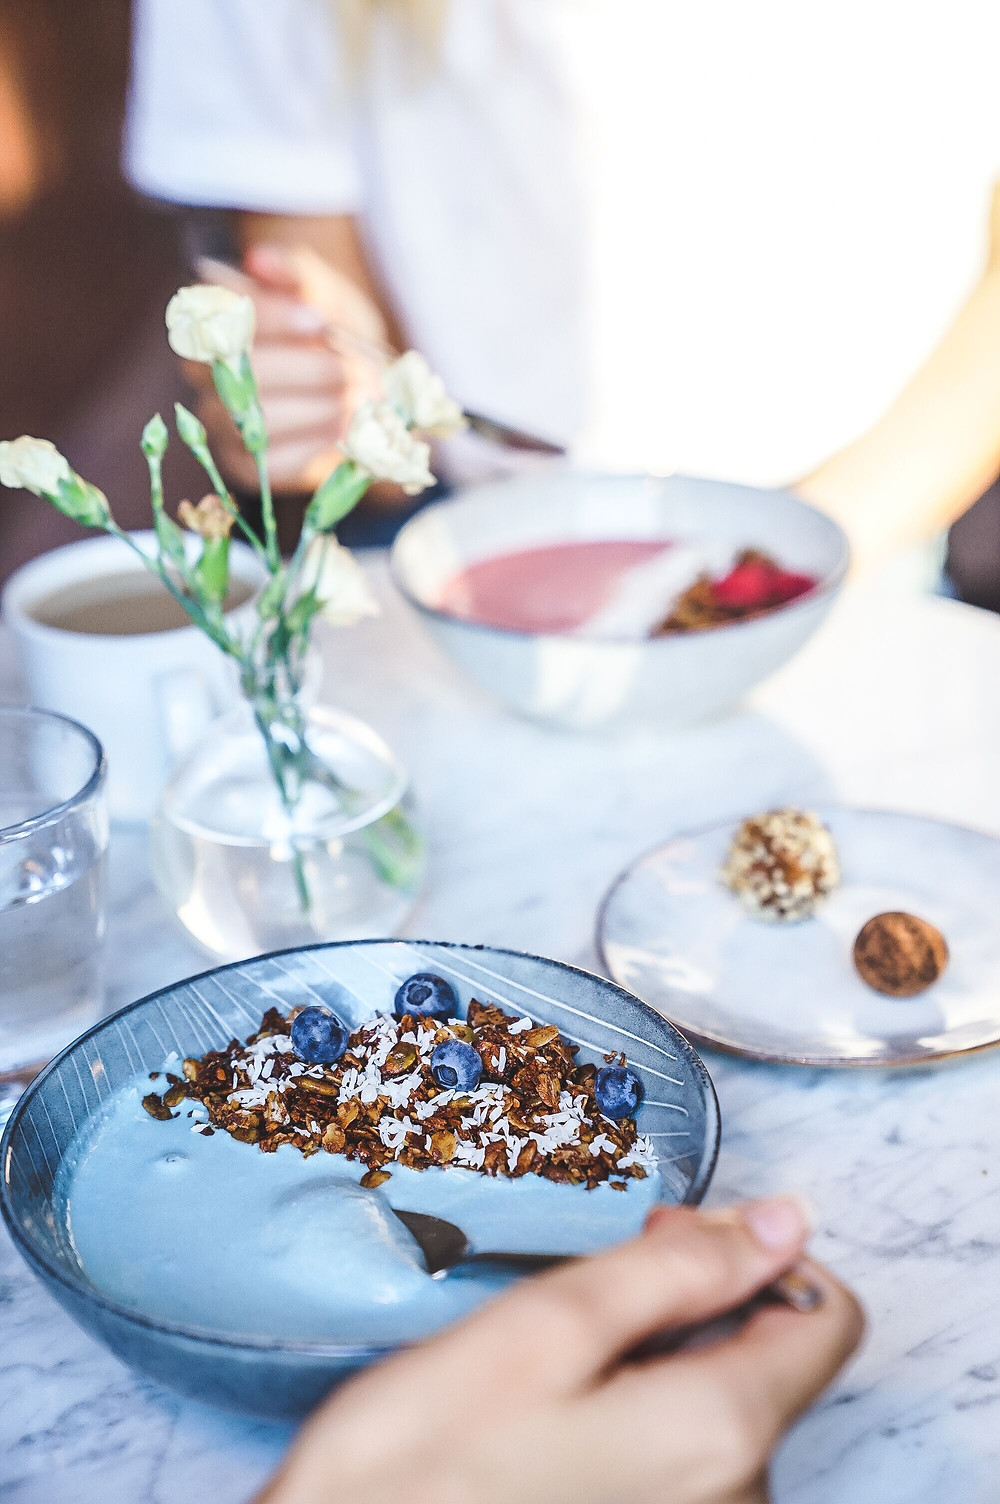 Blue Smoothie bowl with homemade granola in the foreground opposite a red smoothie bowl in a white bowl.